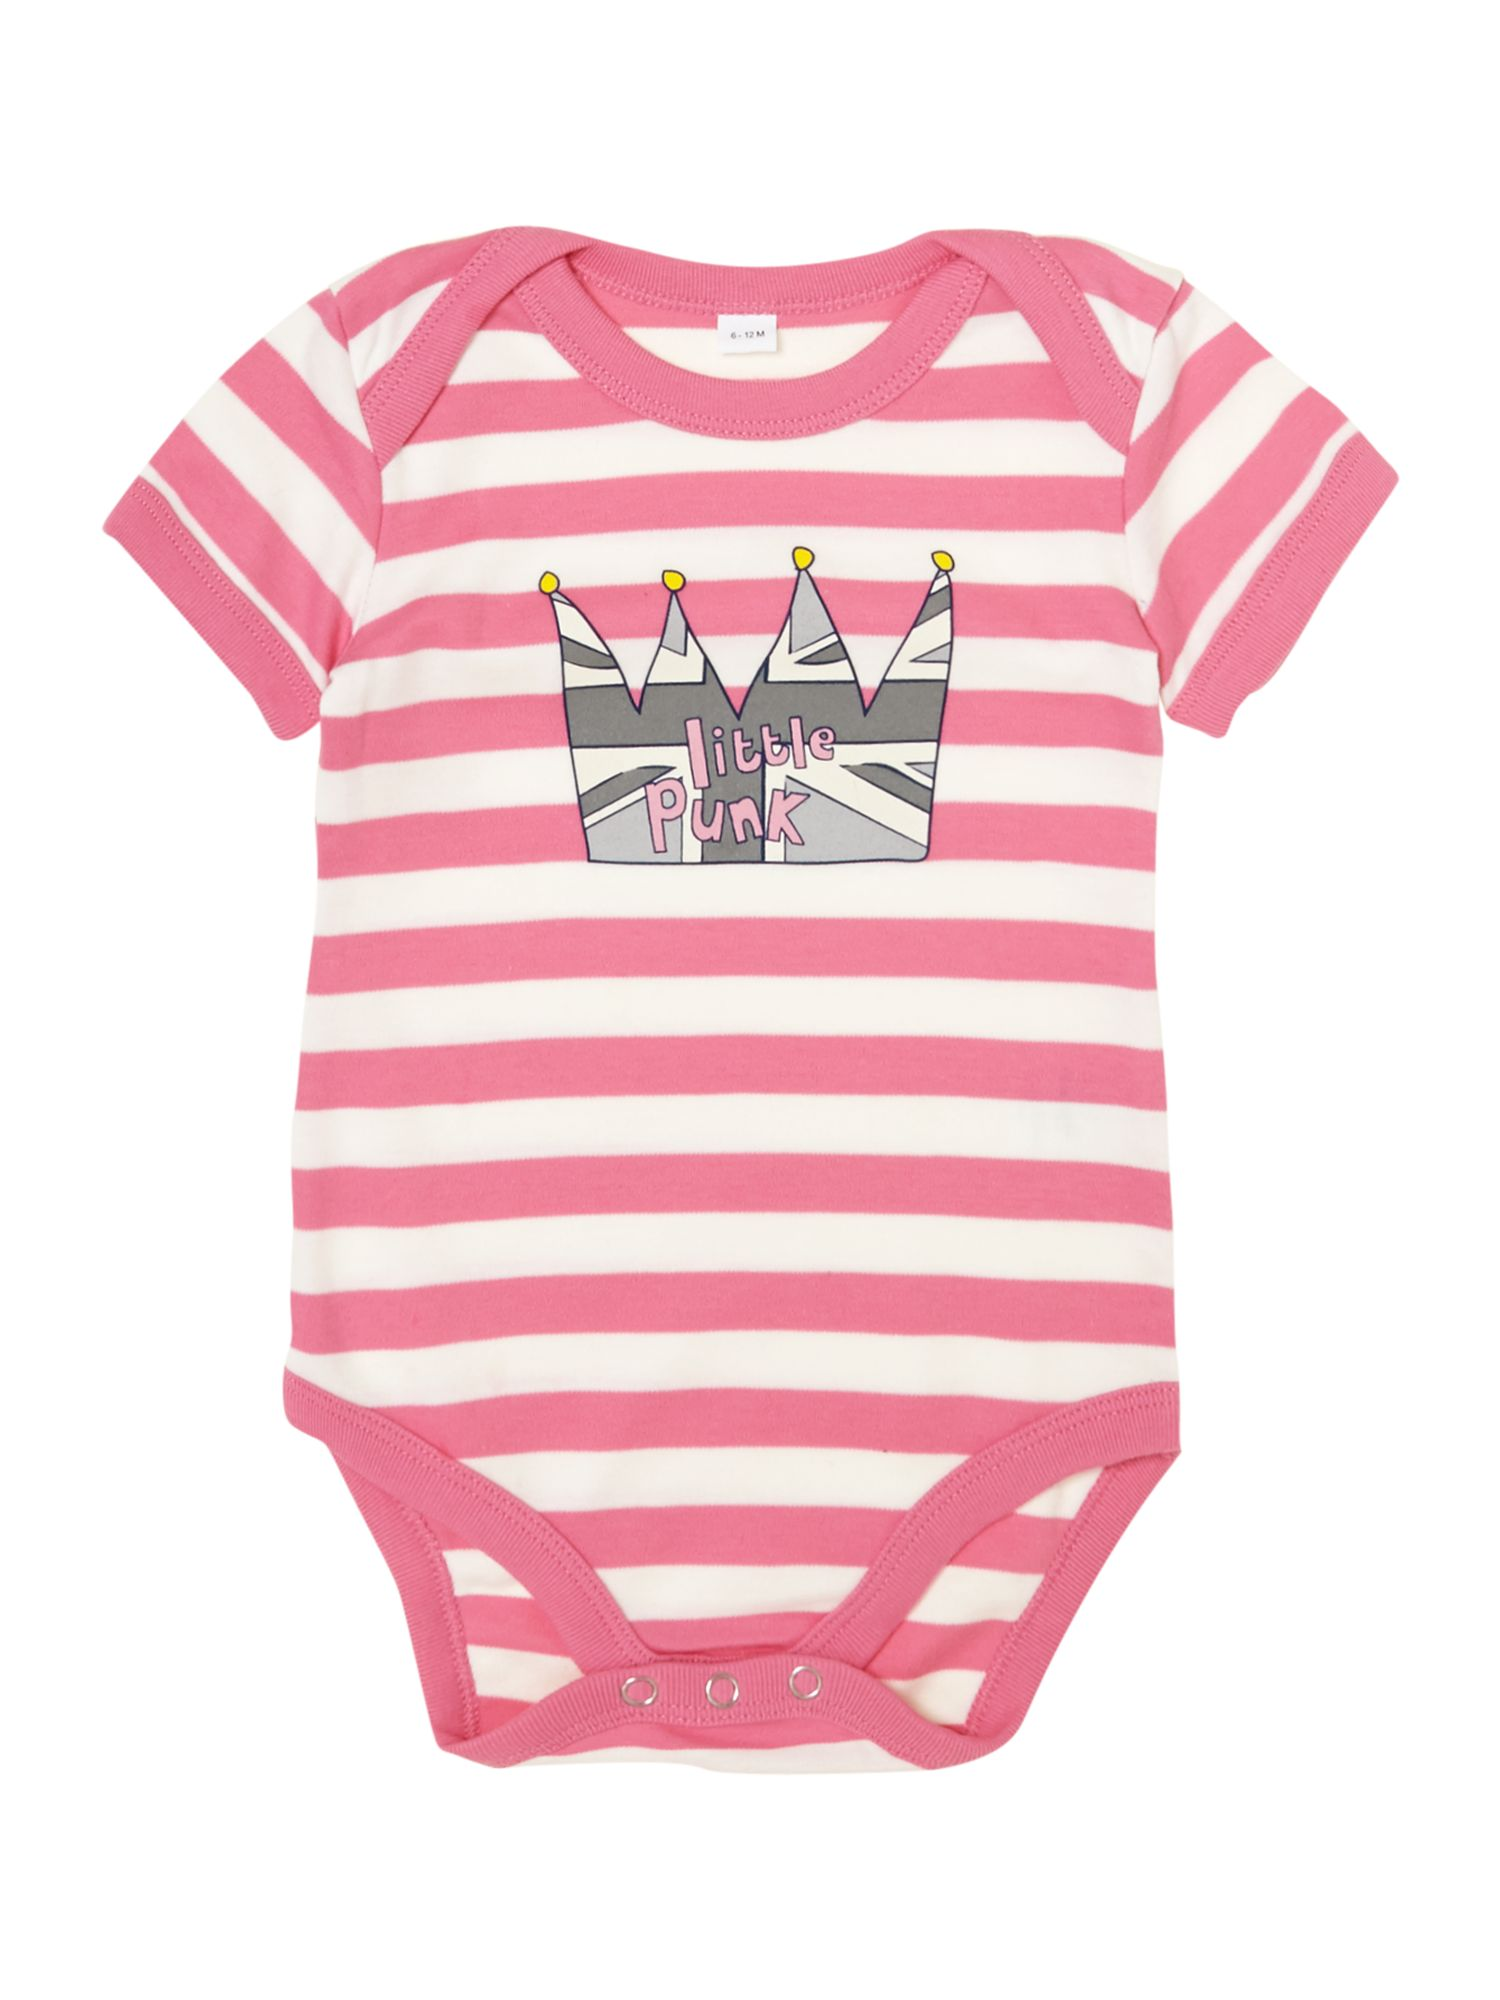 Baby girl cotton striped bodysuit short sleeved